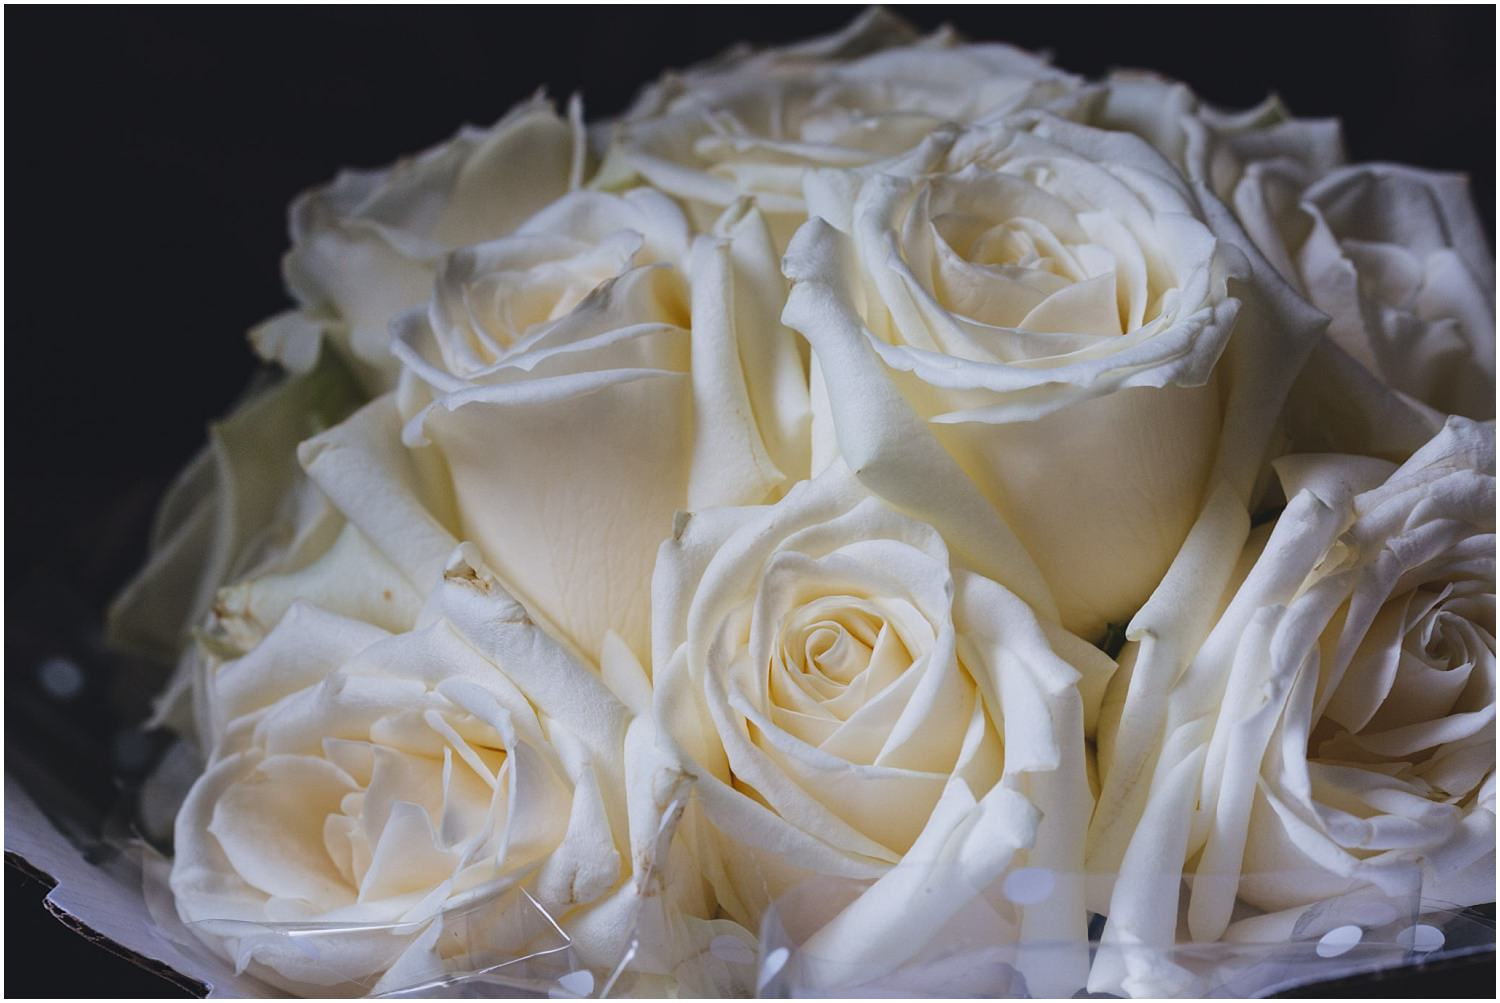 Windsor wedding. Bouquet of white roses